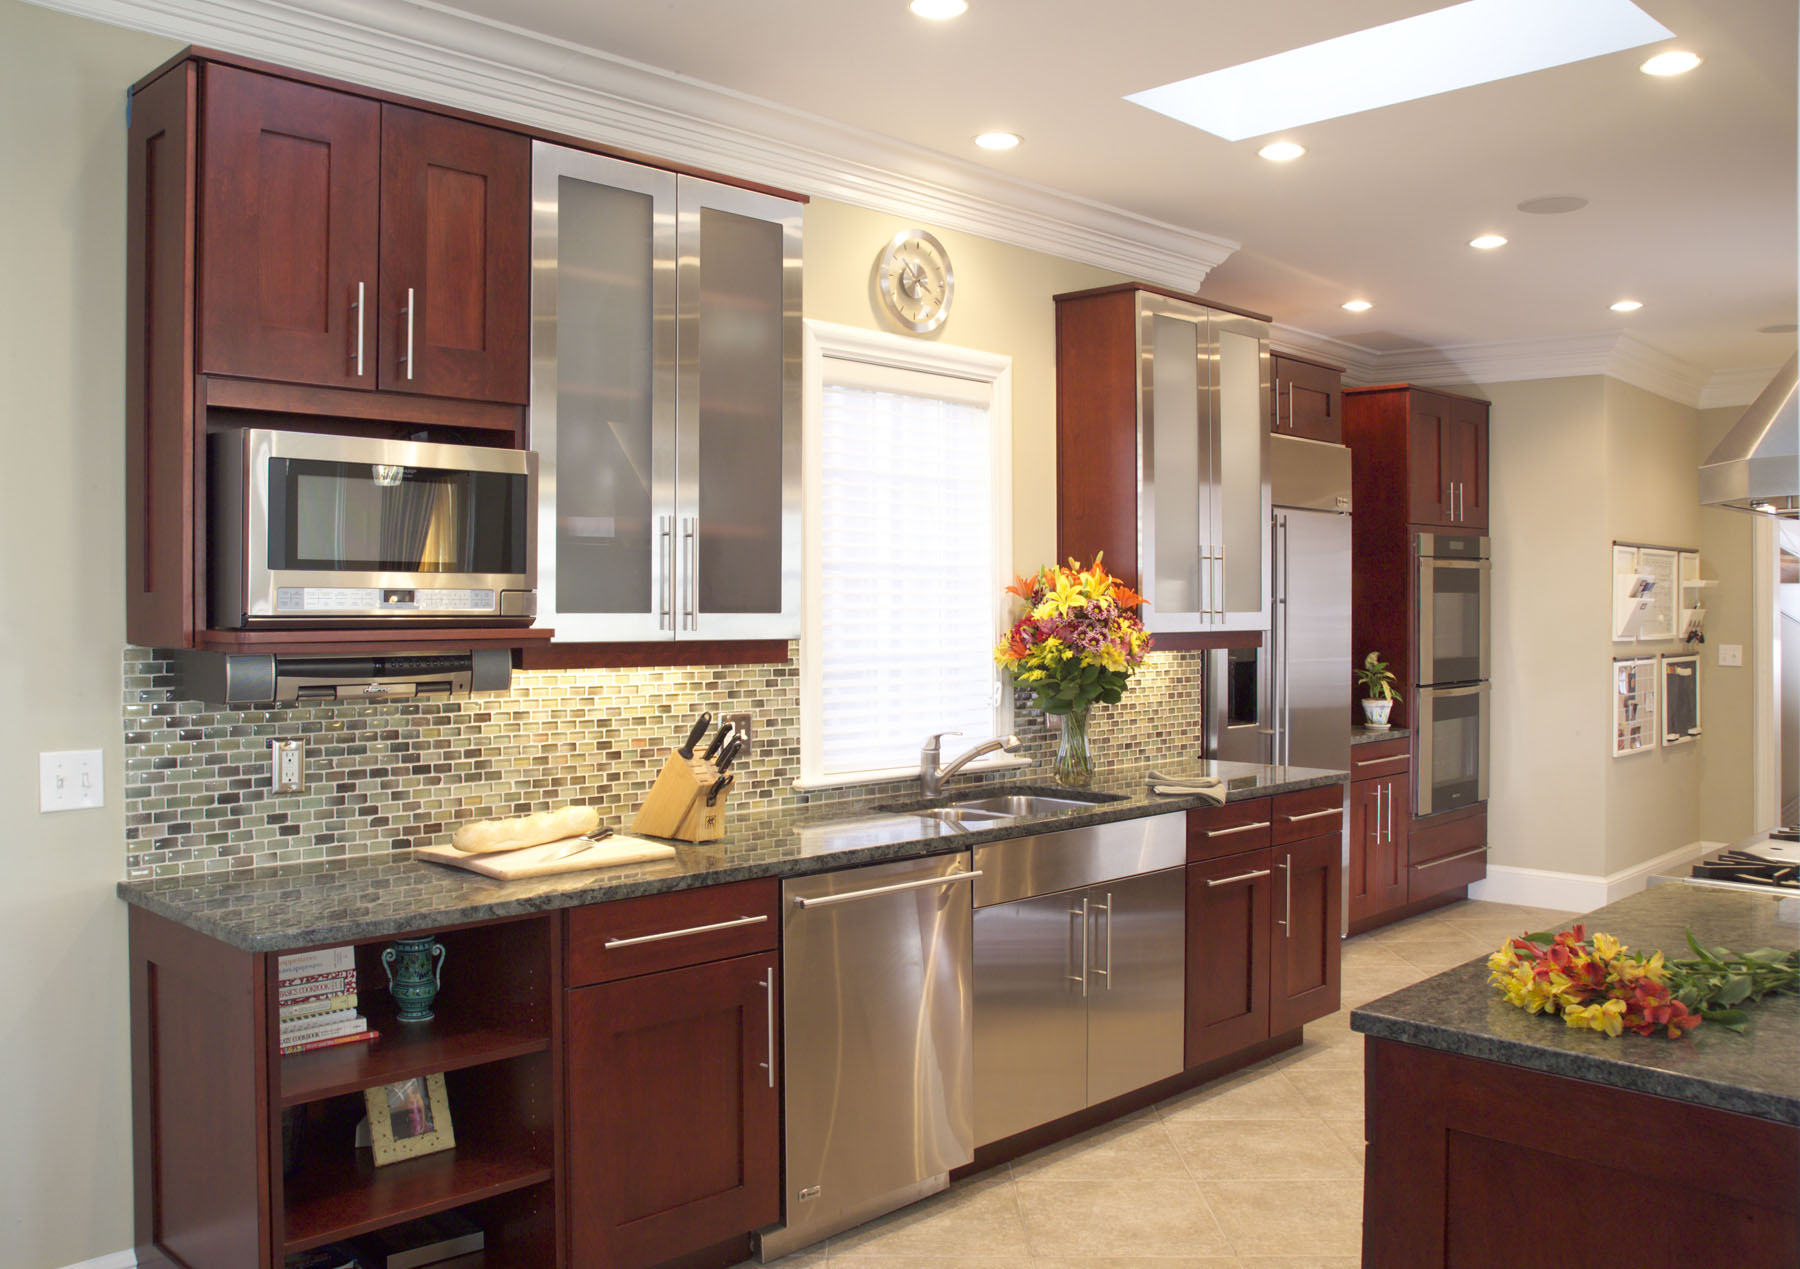 Superb Image Of Kitchen Remodeling Pittsburgh And Amazing Kitchen Cabinet